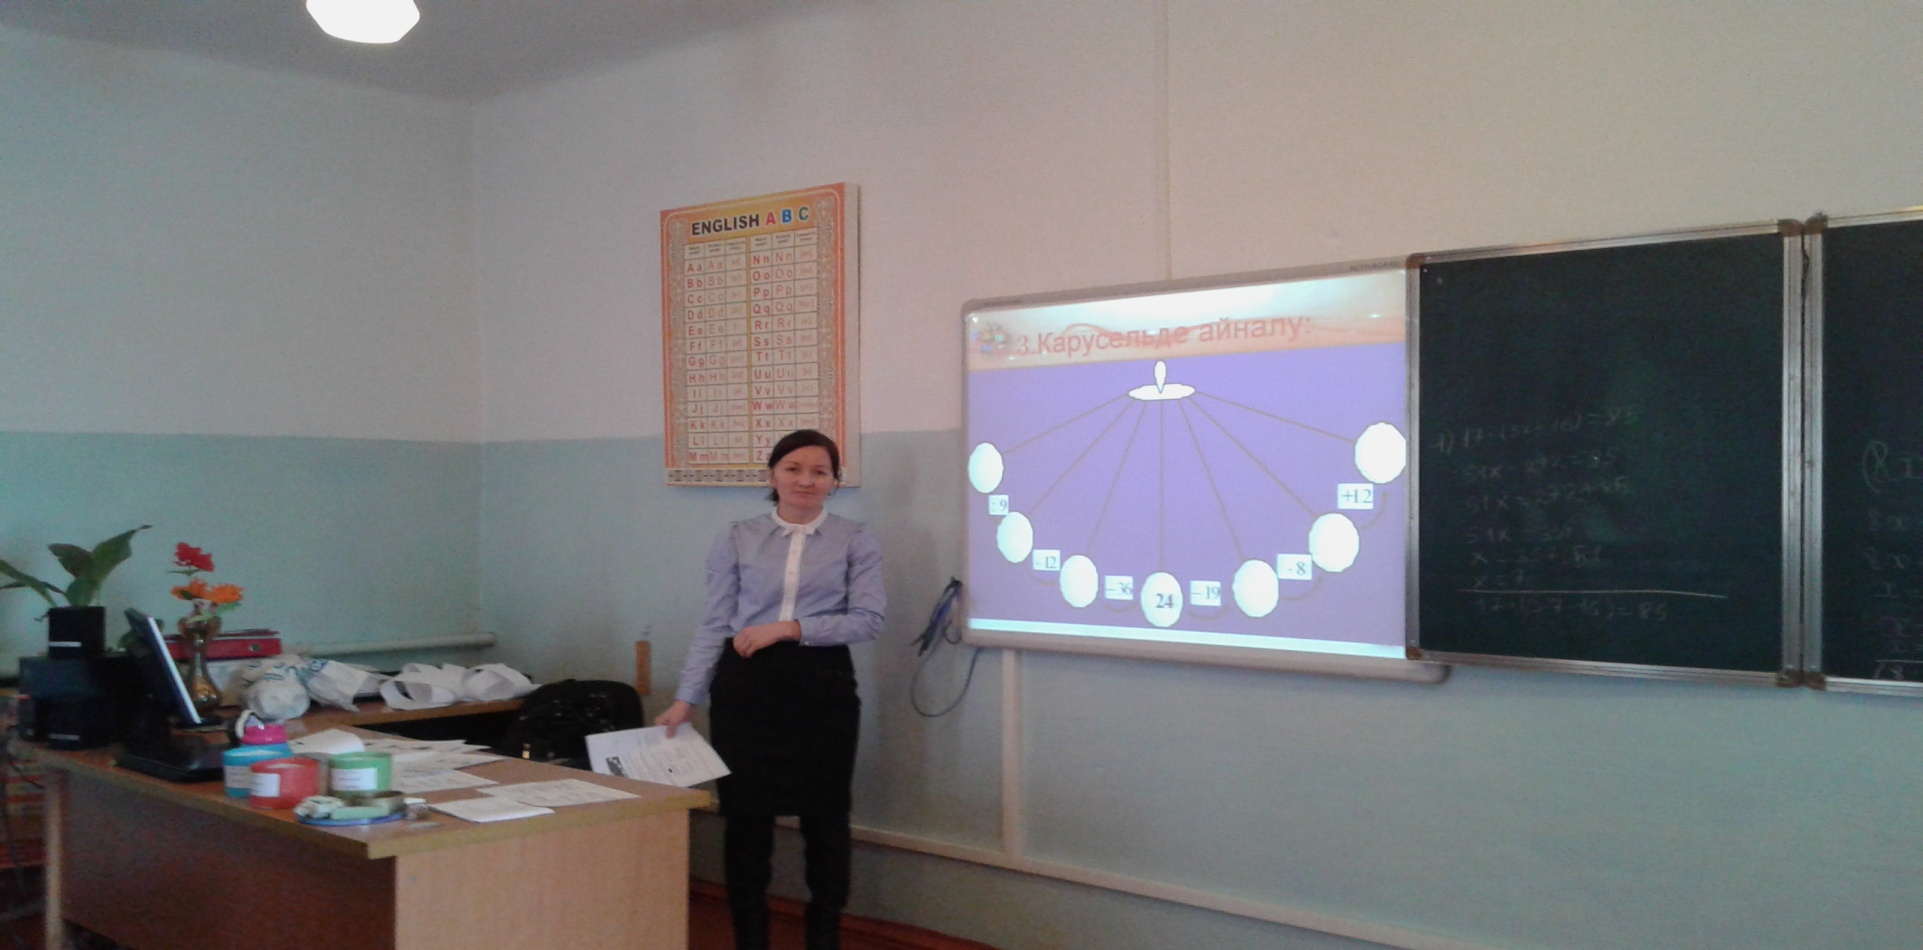 E:\Documents and Settings\Карлыгаш\Рабочий стол\Ашық сабақ\20141118_103934.jpg